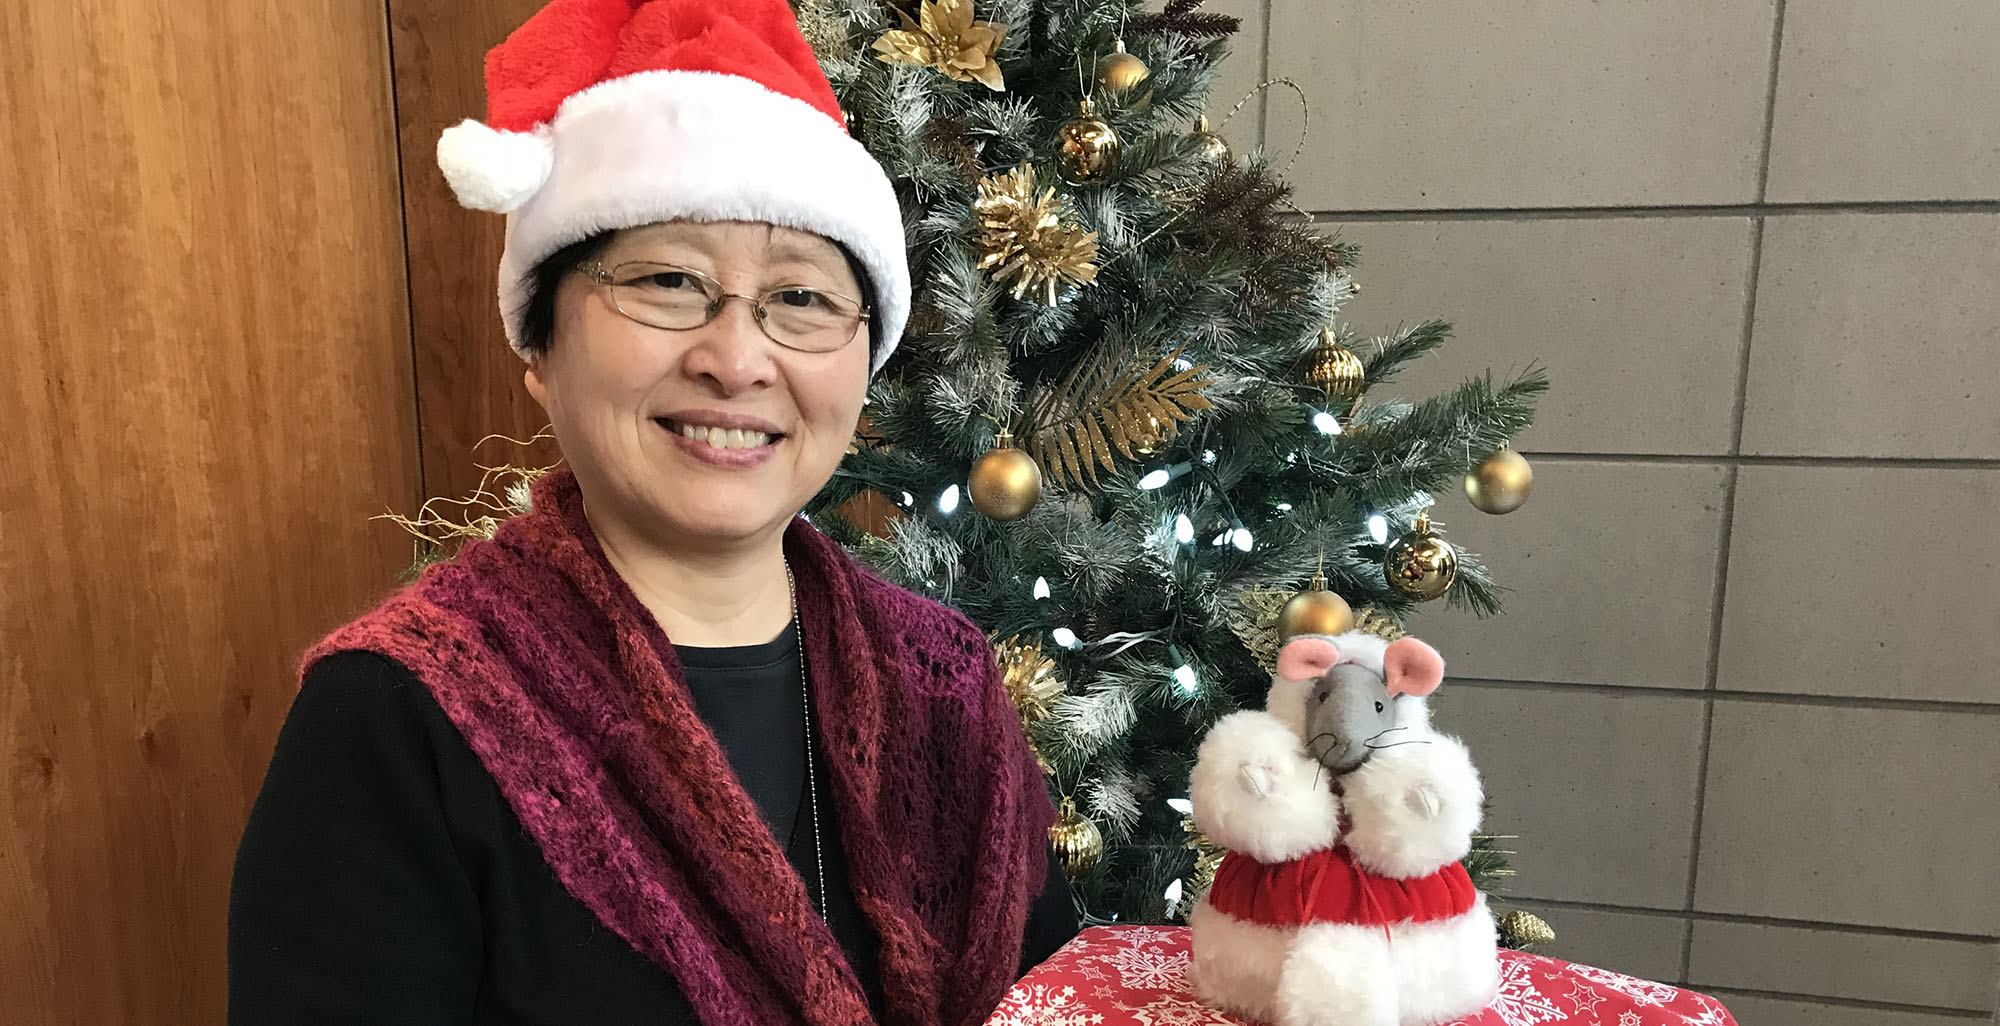 Shi ning a registry administrator for the adoptions team in the ministry of children and family development province of bc